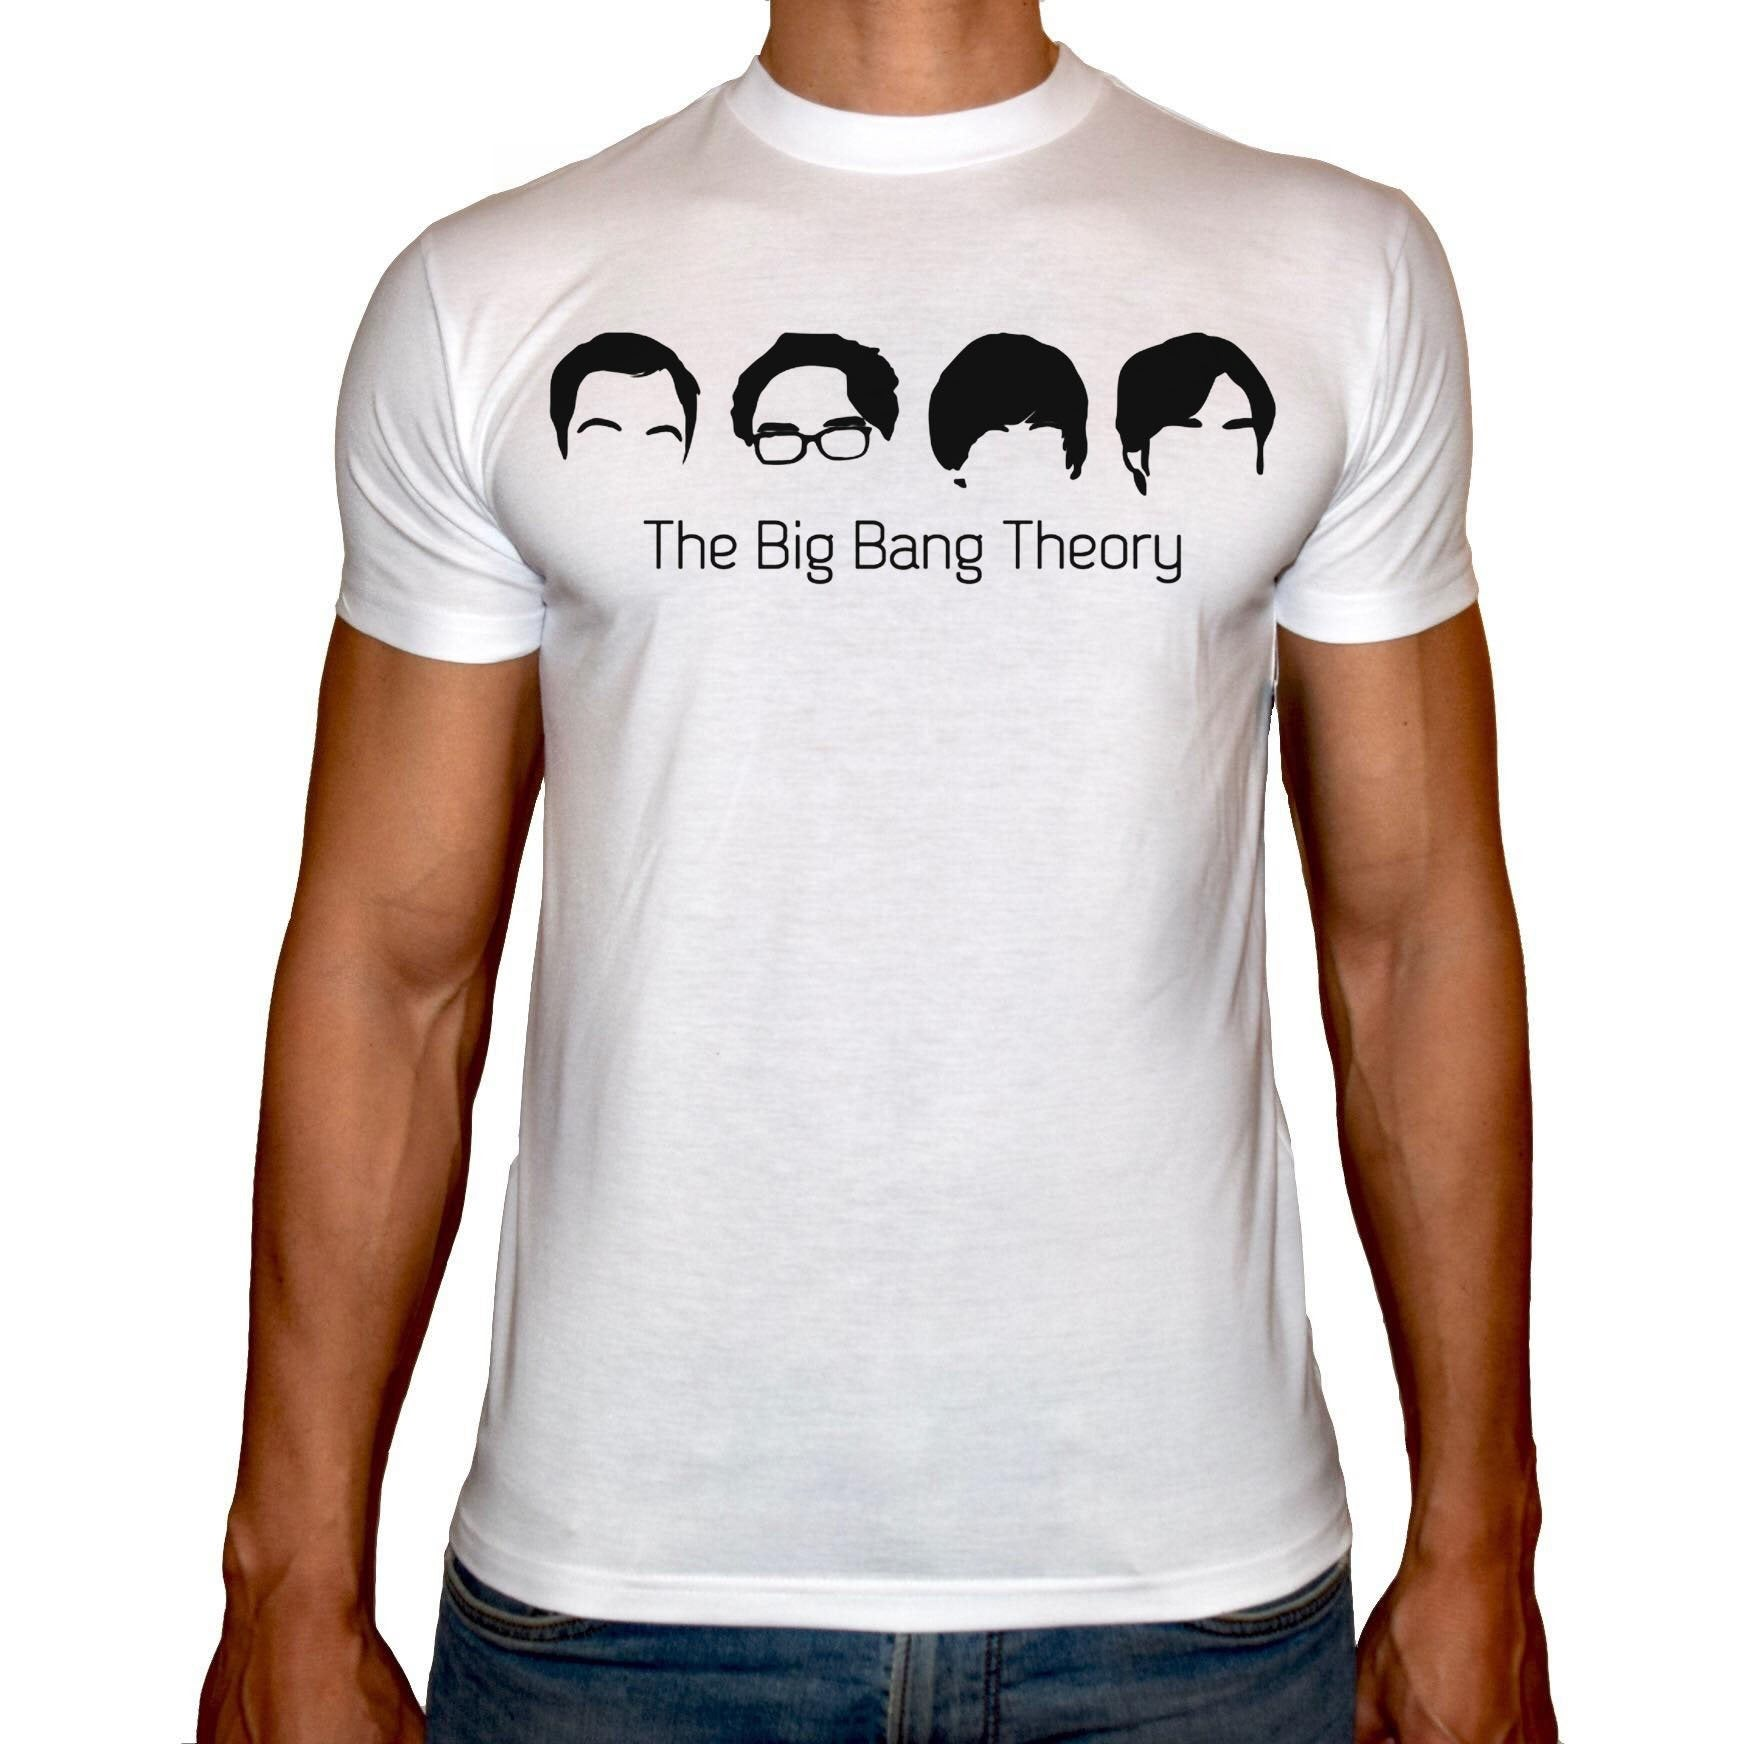 Phoenix WHITE Round Neck Printed T-Shirt Men (Big bang theory)